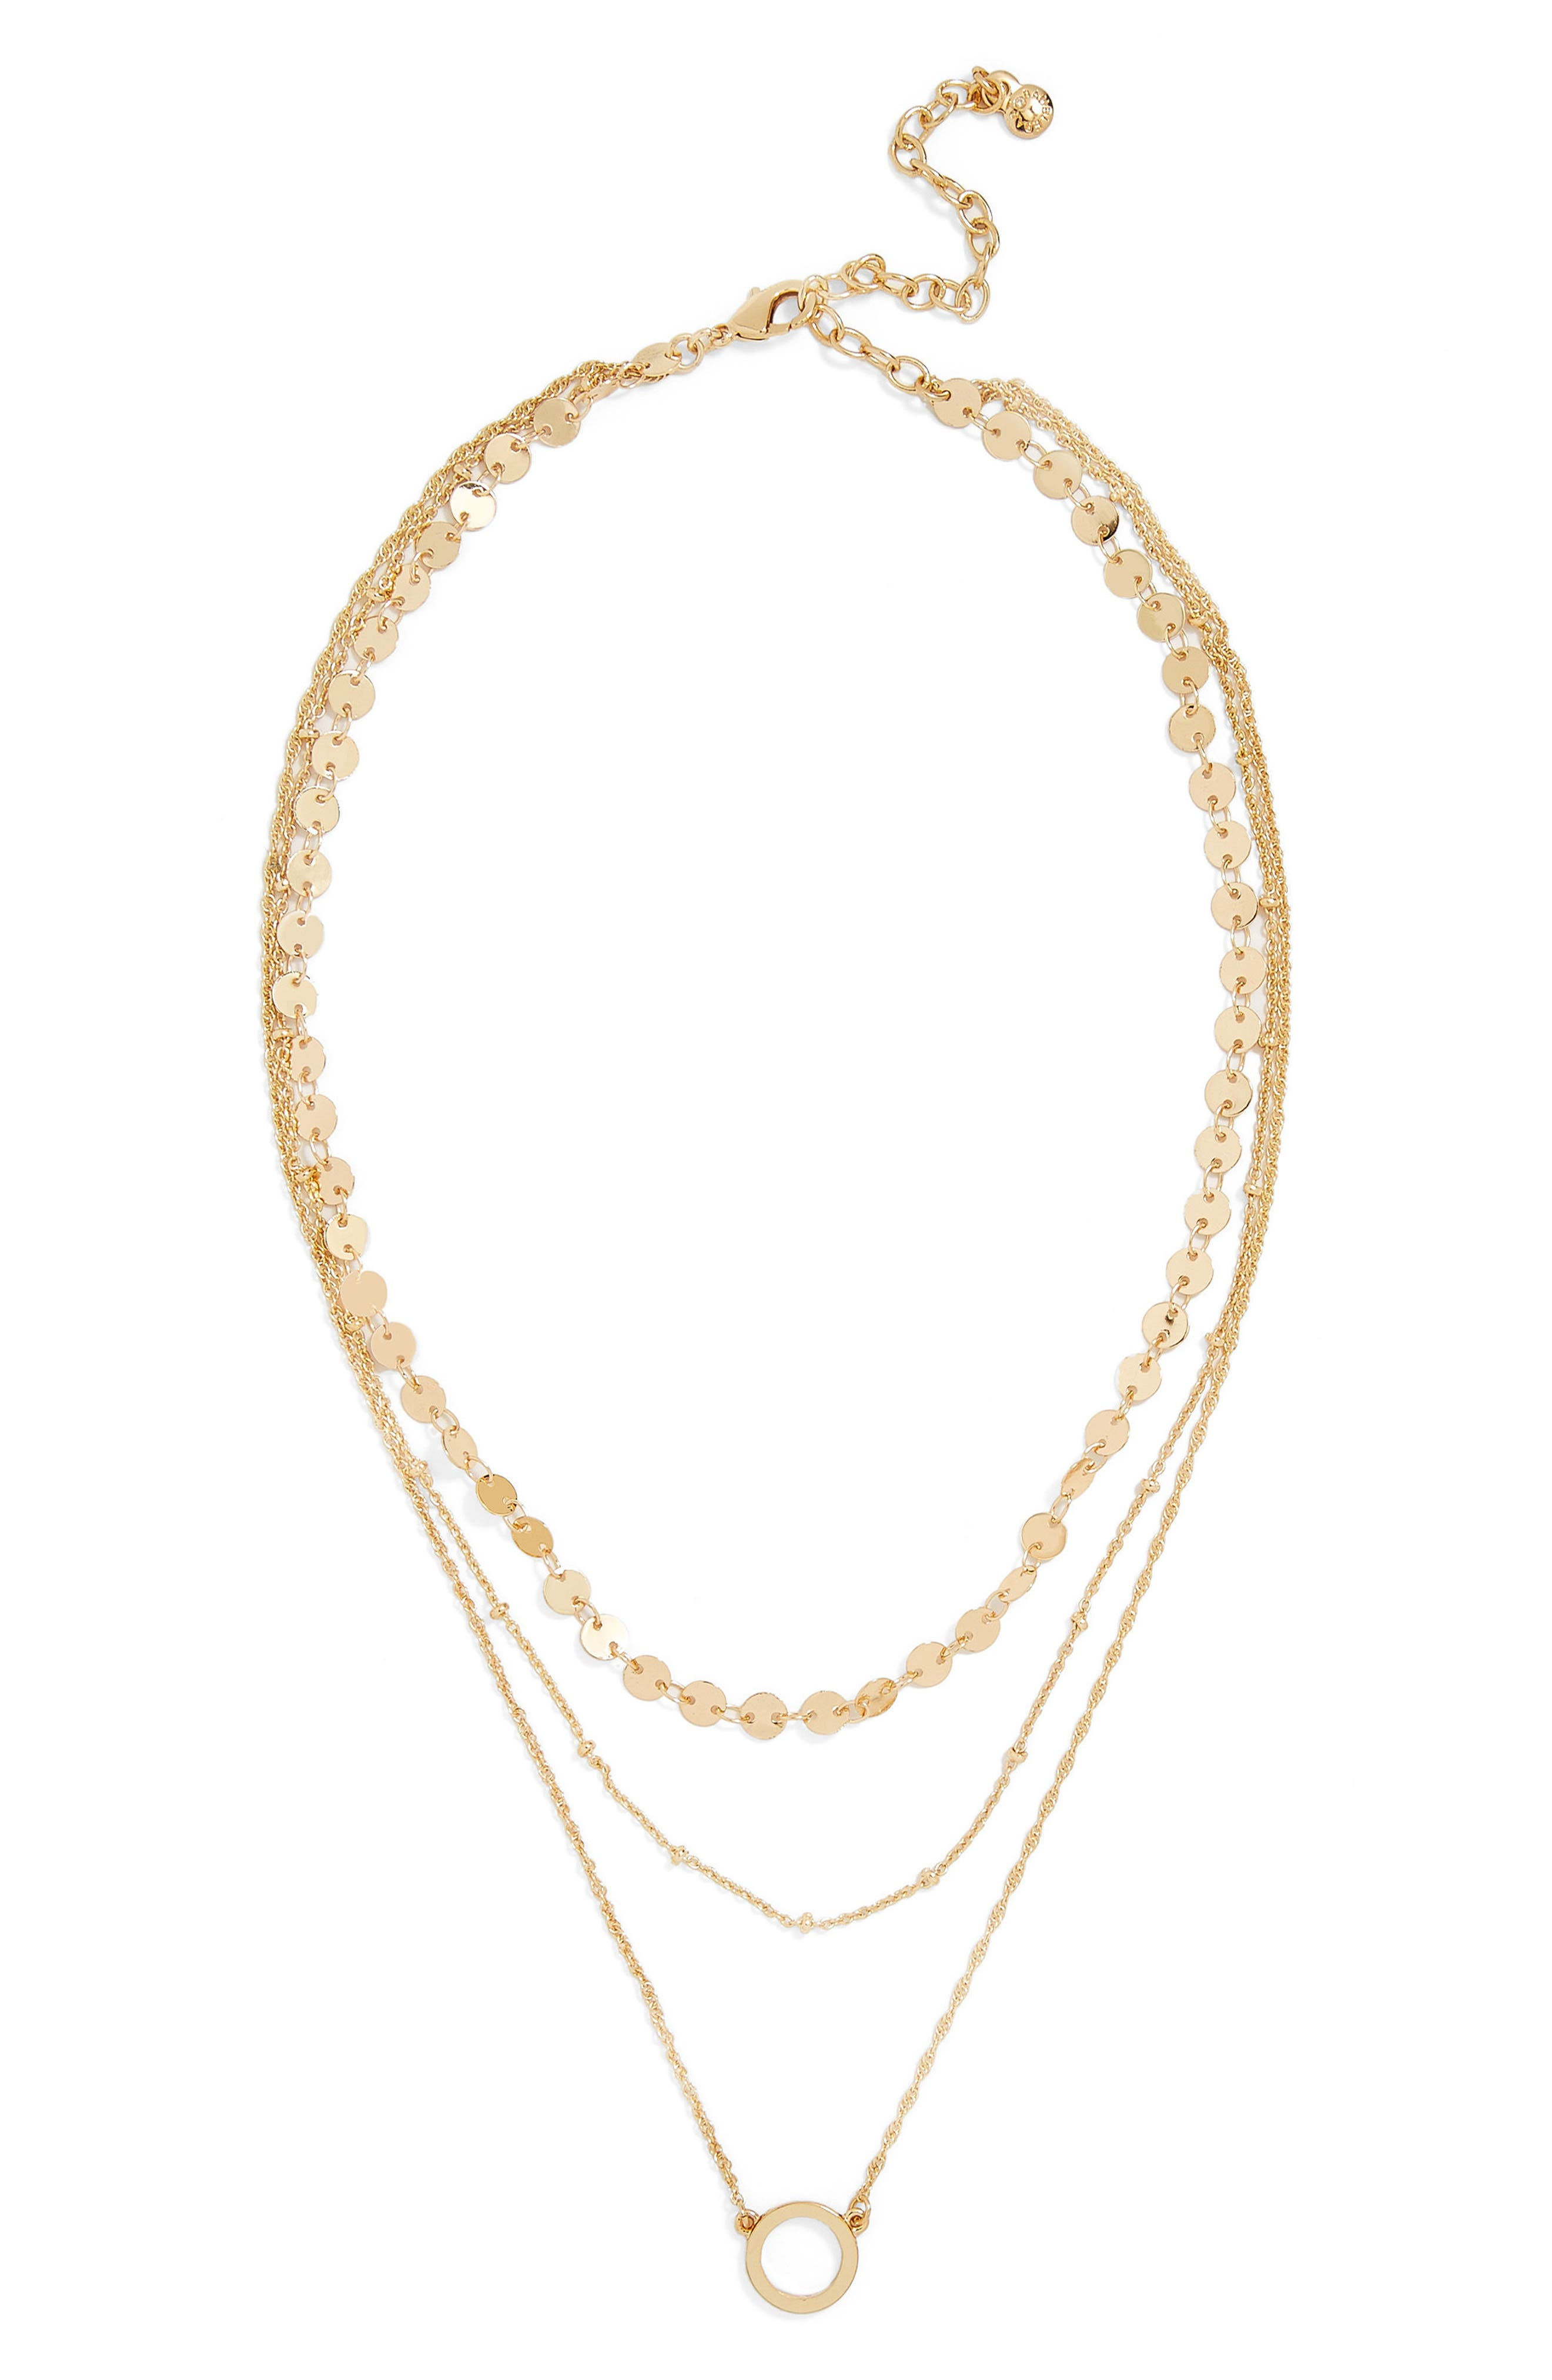 BAUBLEBAR, Adrielle Triple Strand Necklace, Main thumbnail 1, color, GOLD